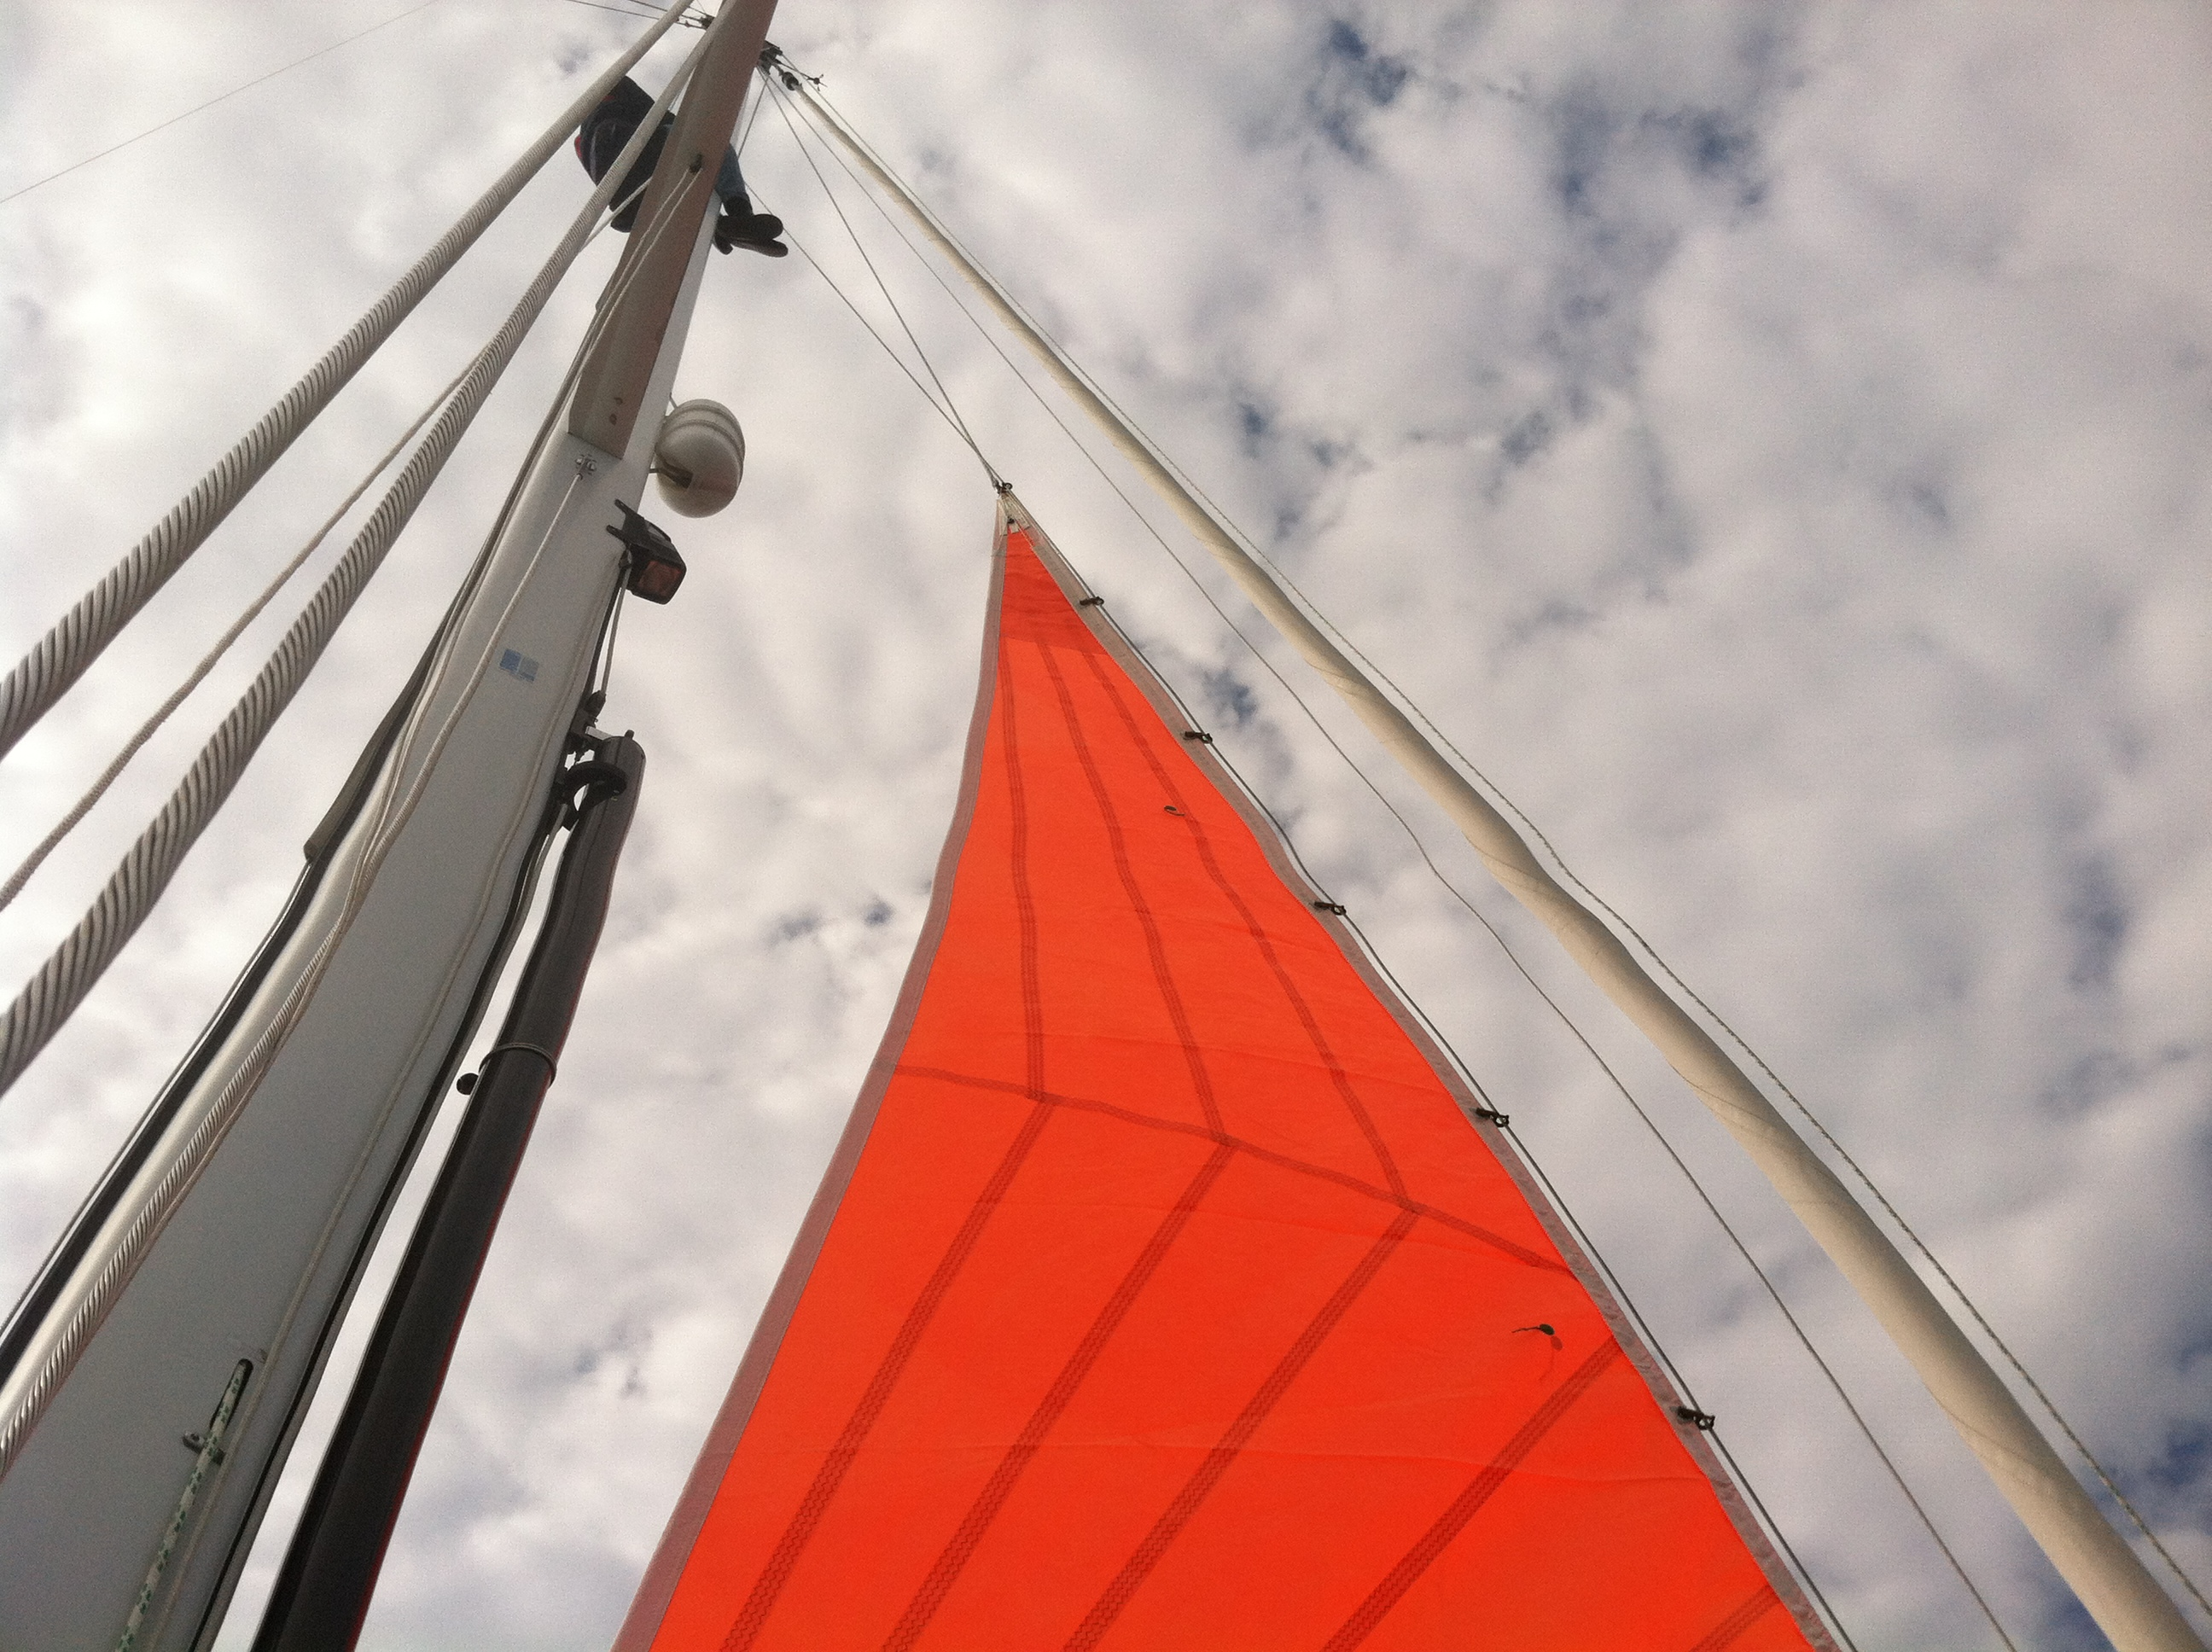 Storm sails built after 2014 are required to be a high visibility color.